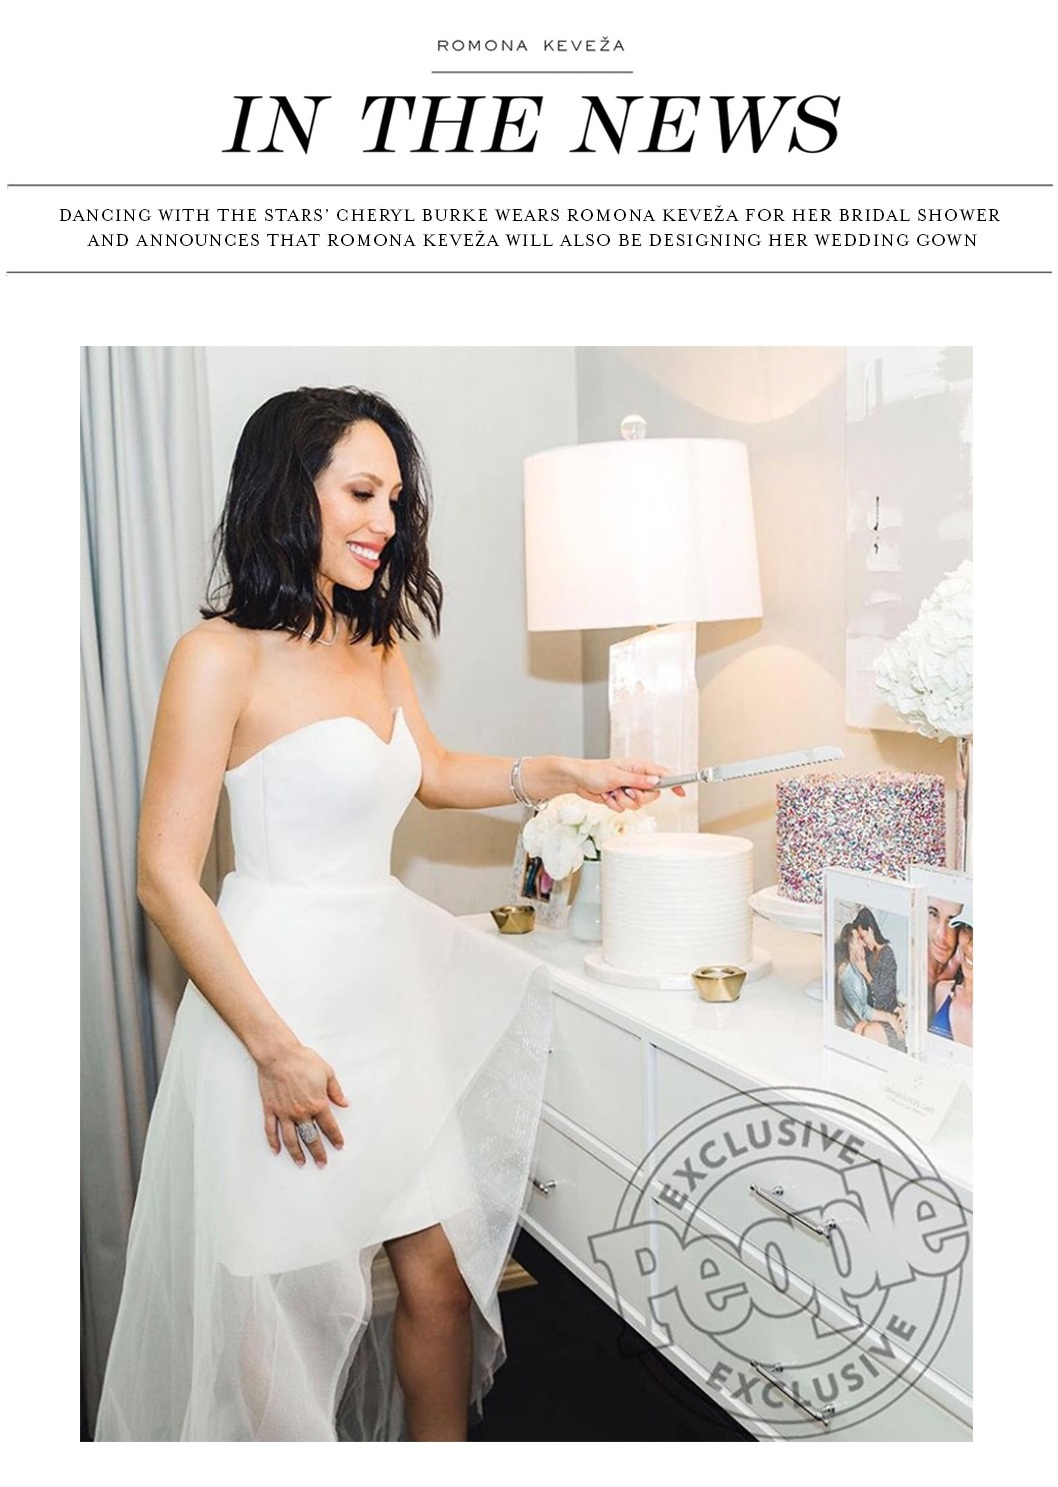 PressRelease_Retailers_CherylBurke_WeddingDressAnnouncement.jpg